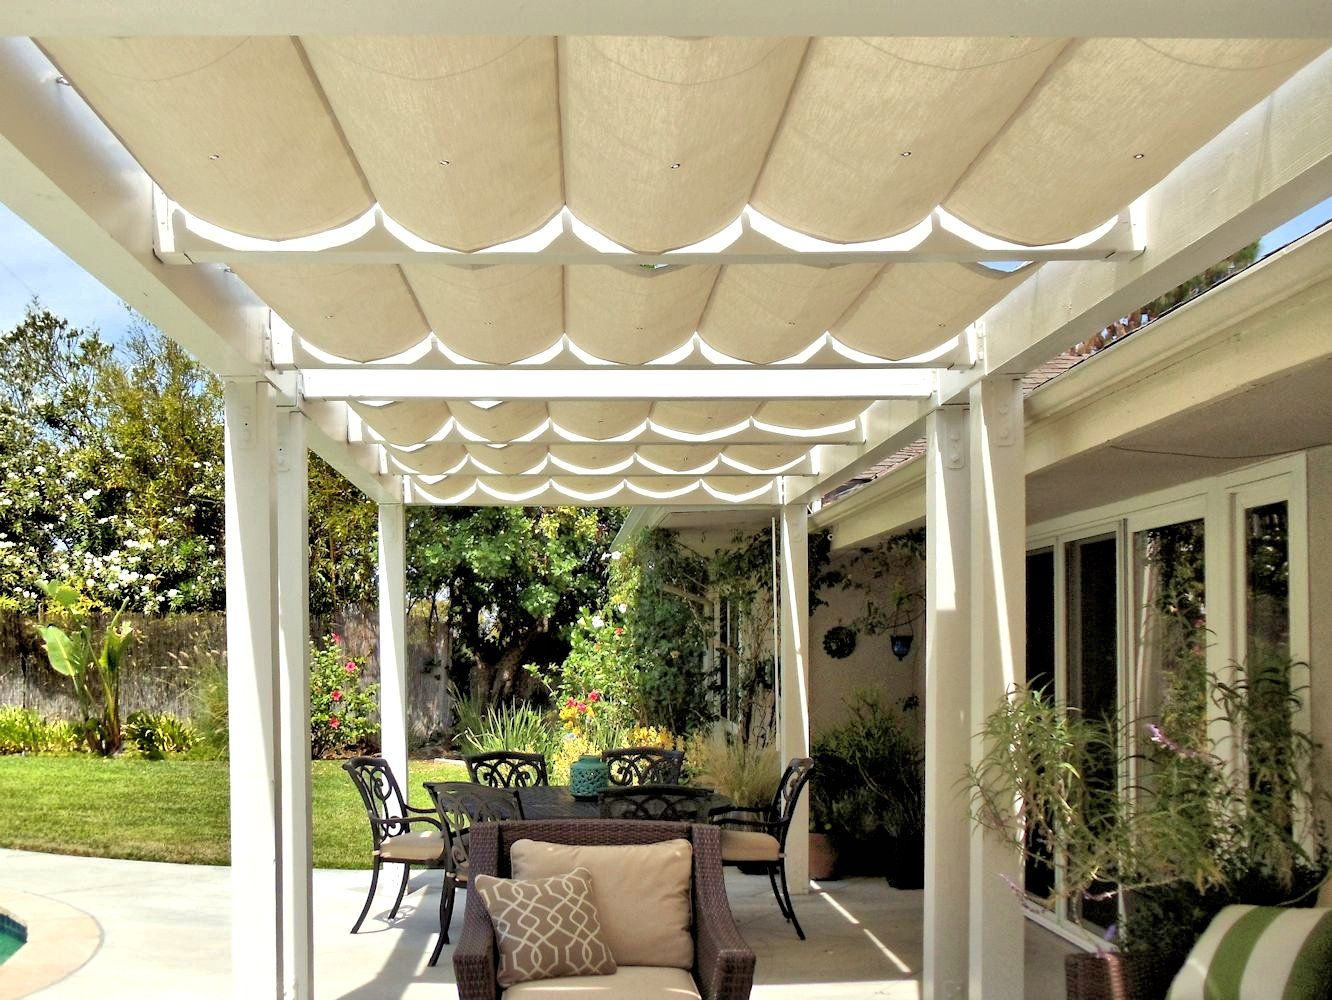 Slide Wire Patio Canopy & Slide Wire Patio Canopy | Hamilton Res | Pinterest | Canopy ...